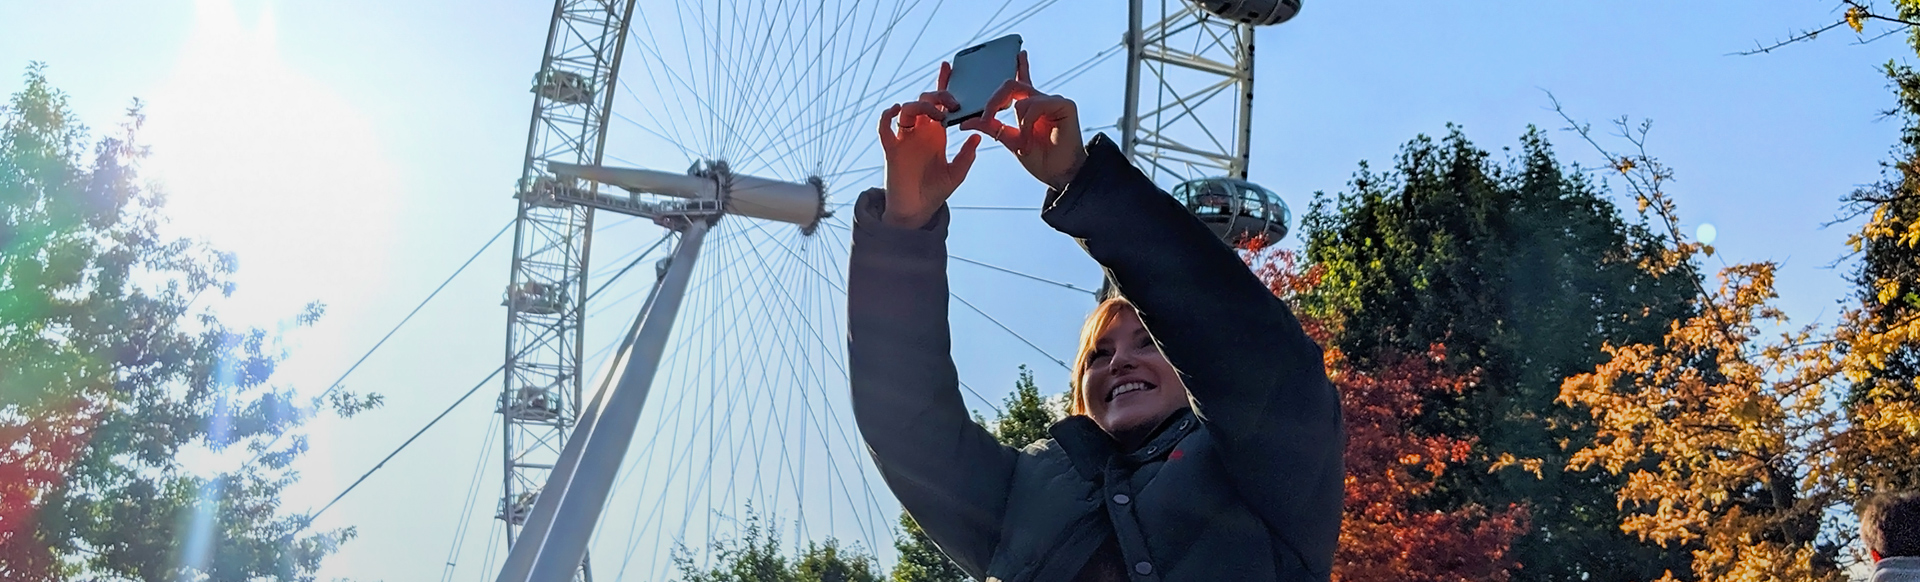 A woman takes a photo with her smartphone, with the London Eye in the background.